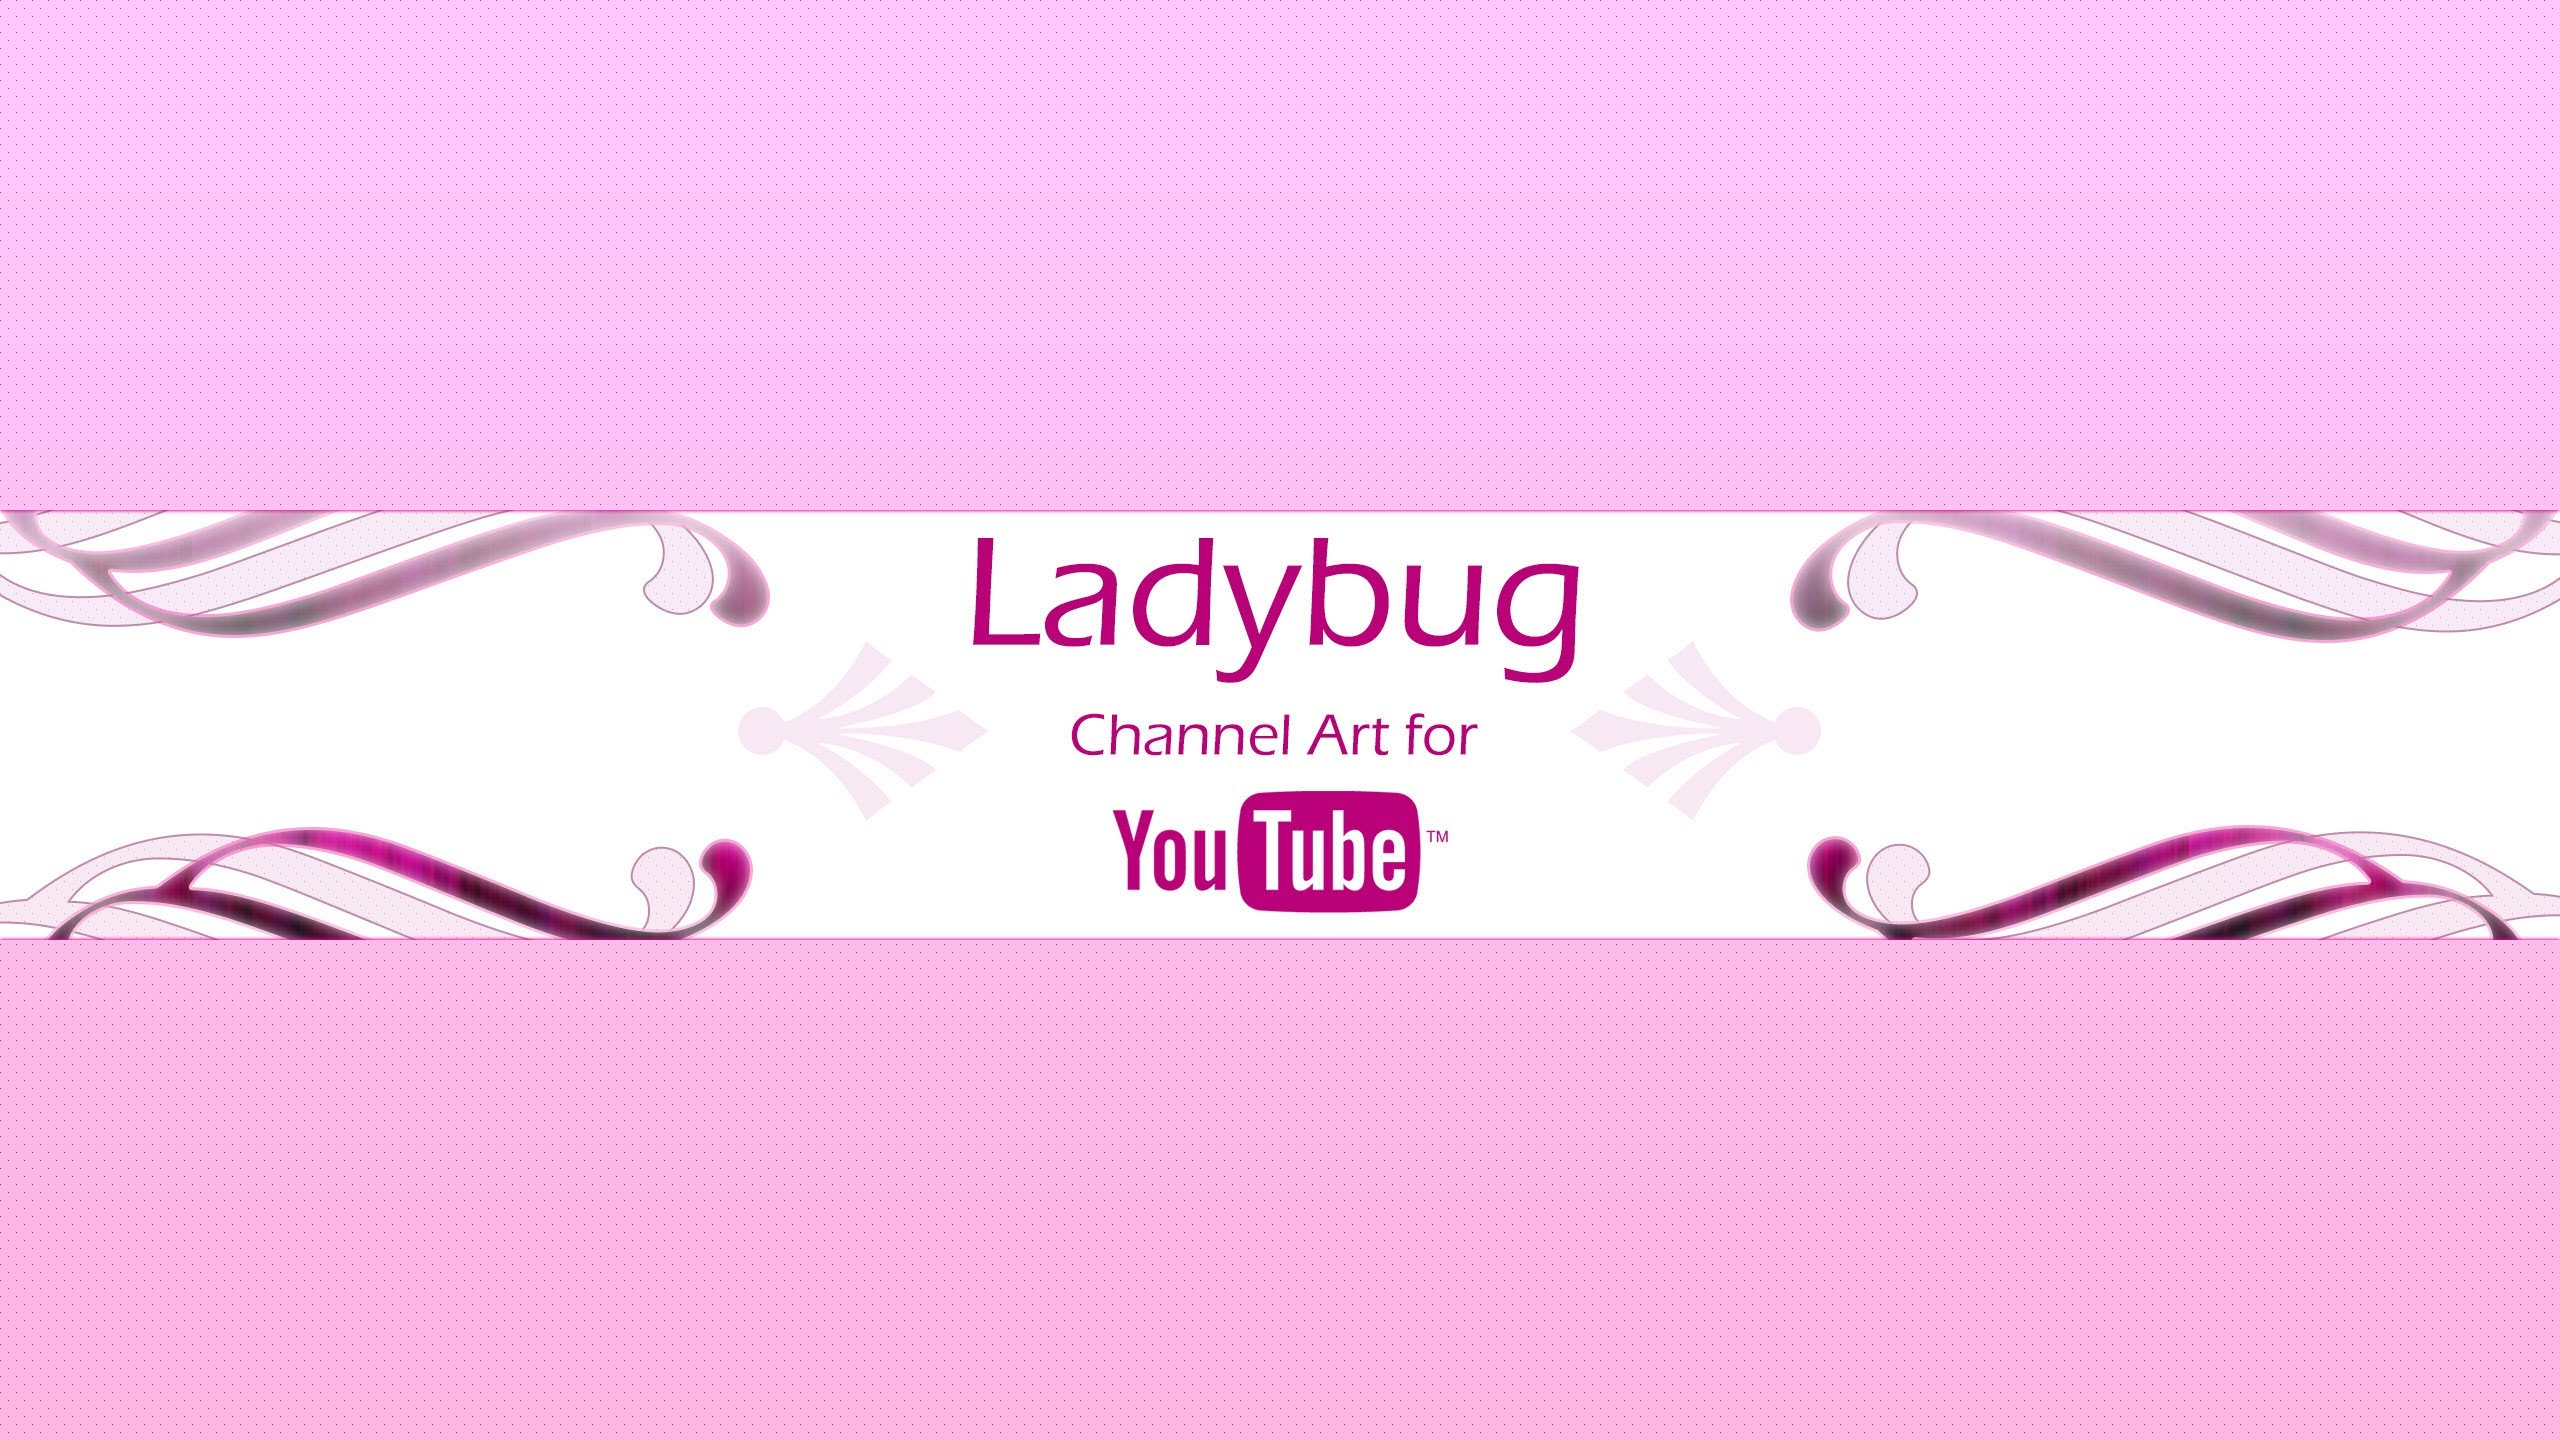 Ladybug Channel Art Template for YouTube Photoshop PSD 2560x1440